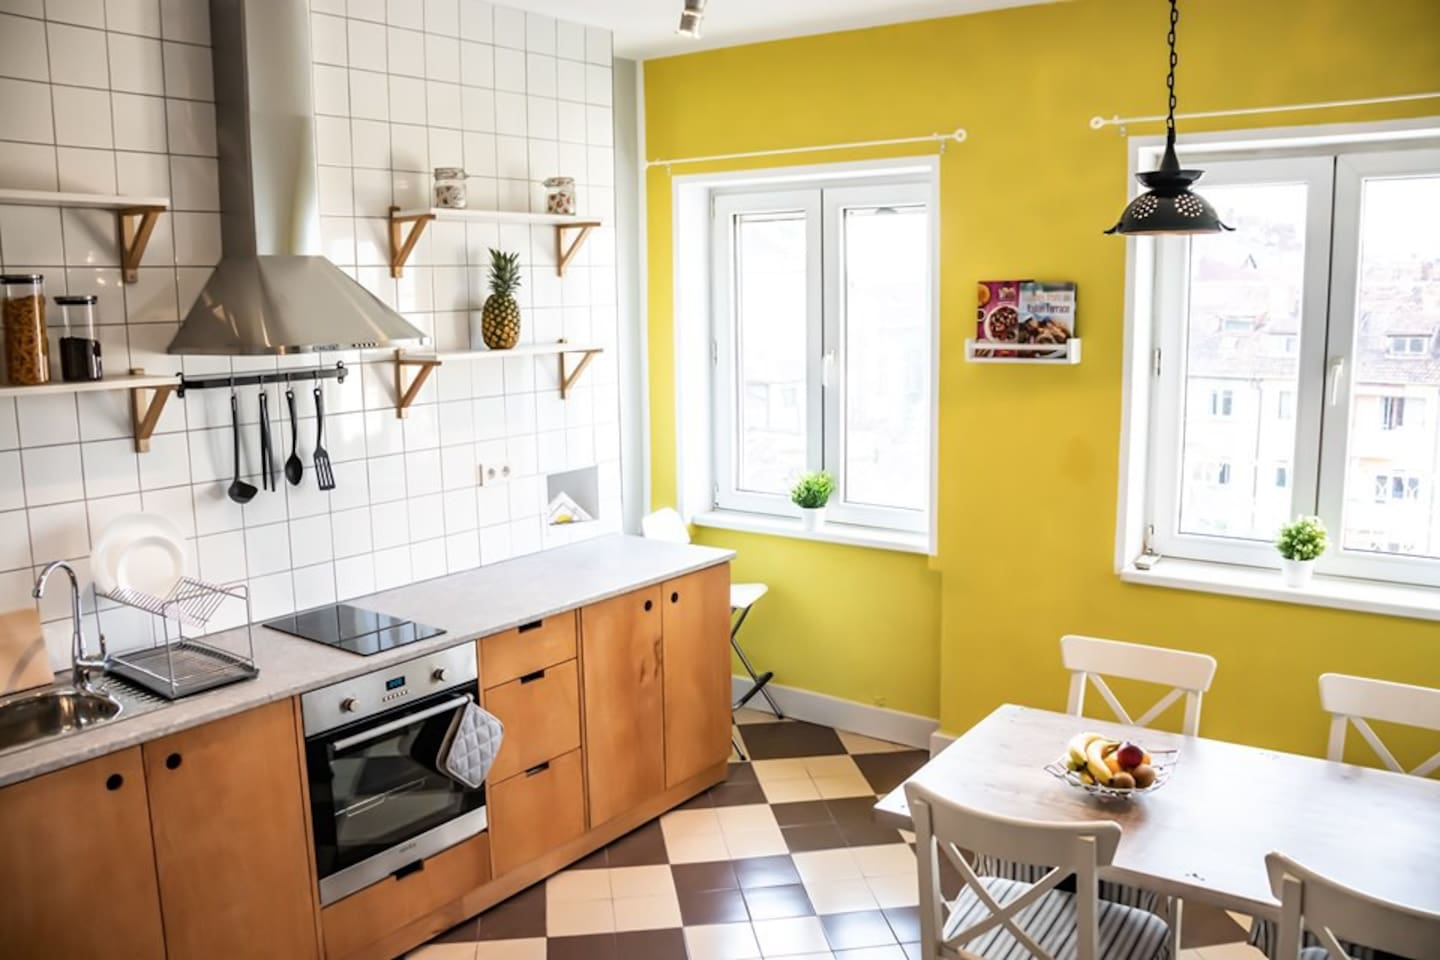 A fully equipped bright kitchen.